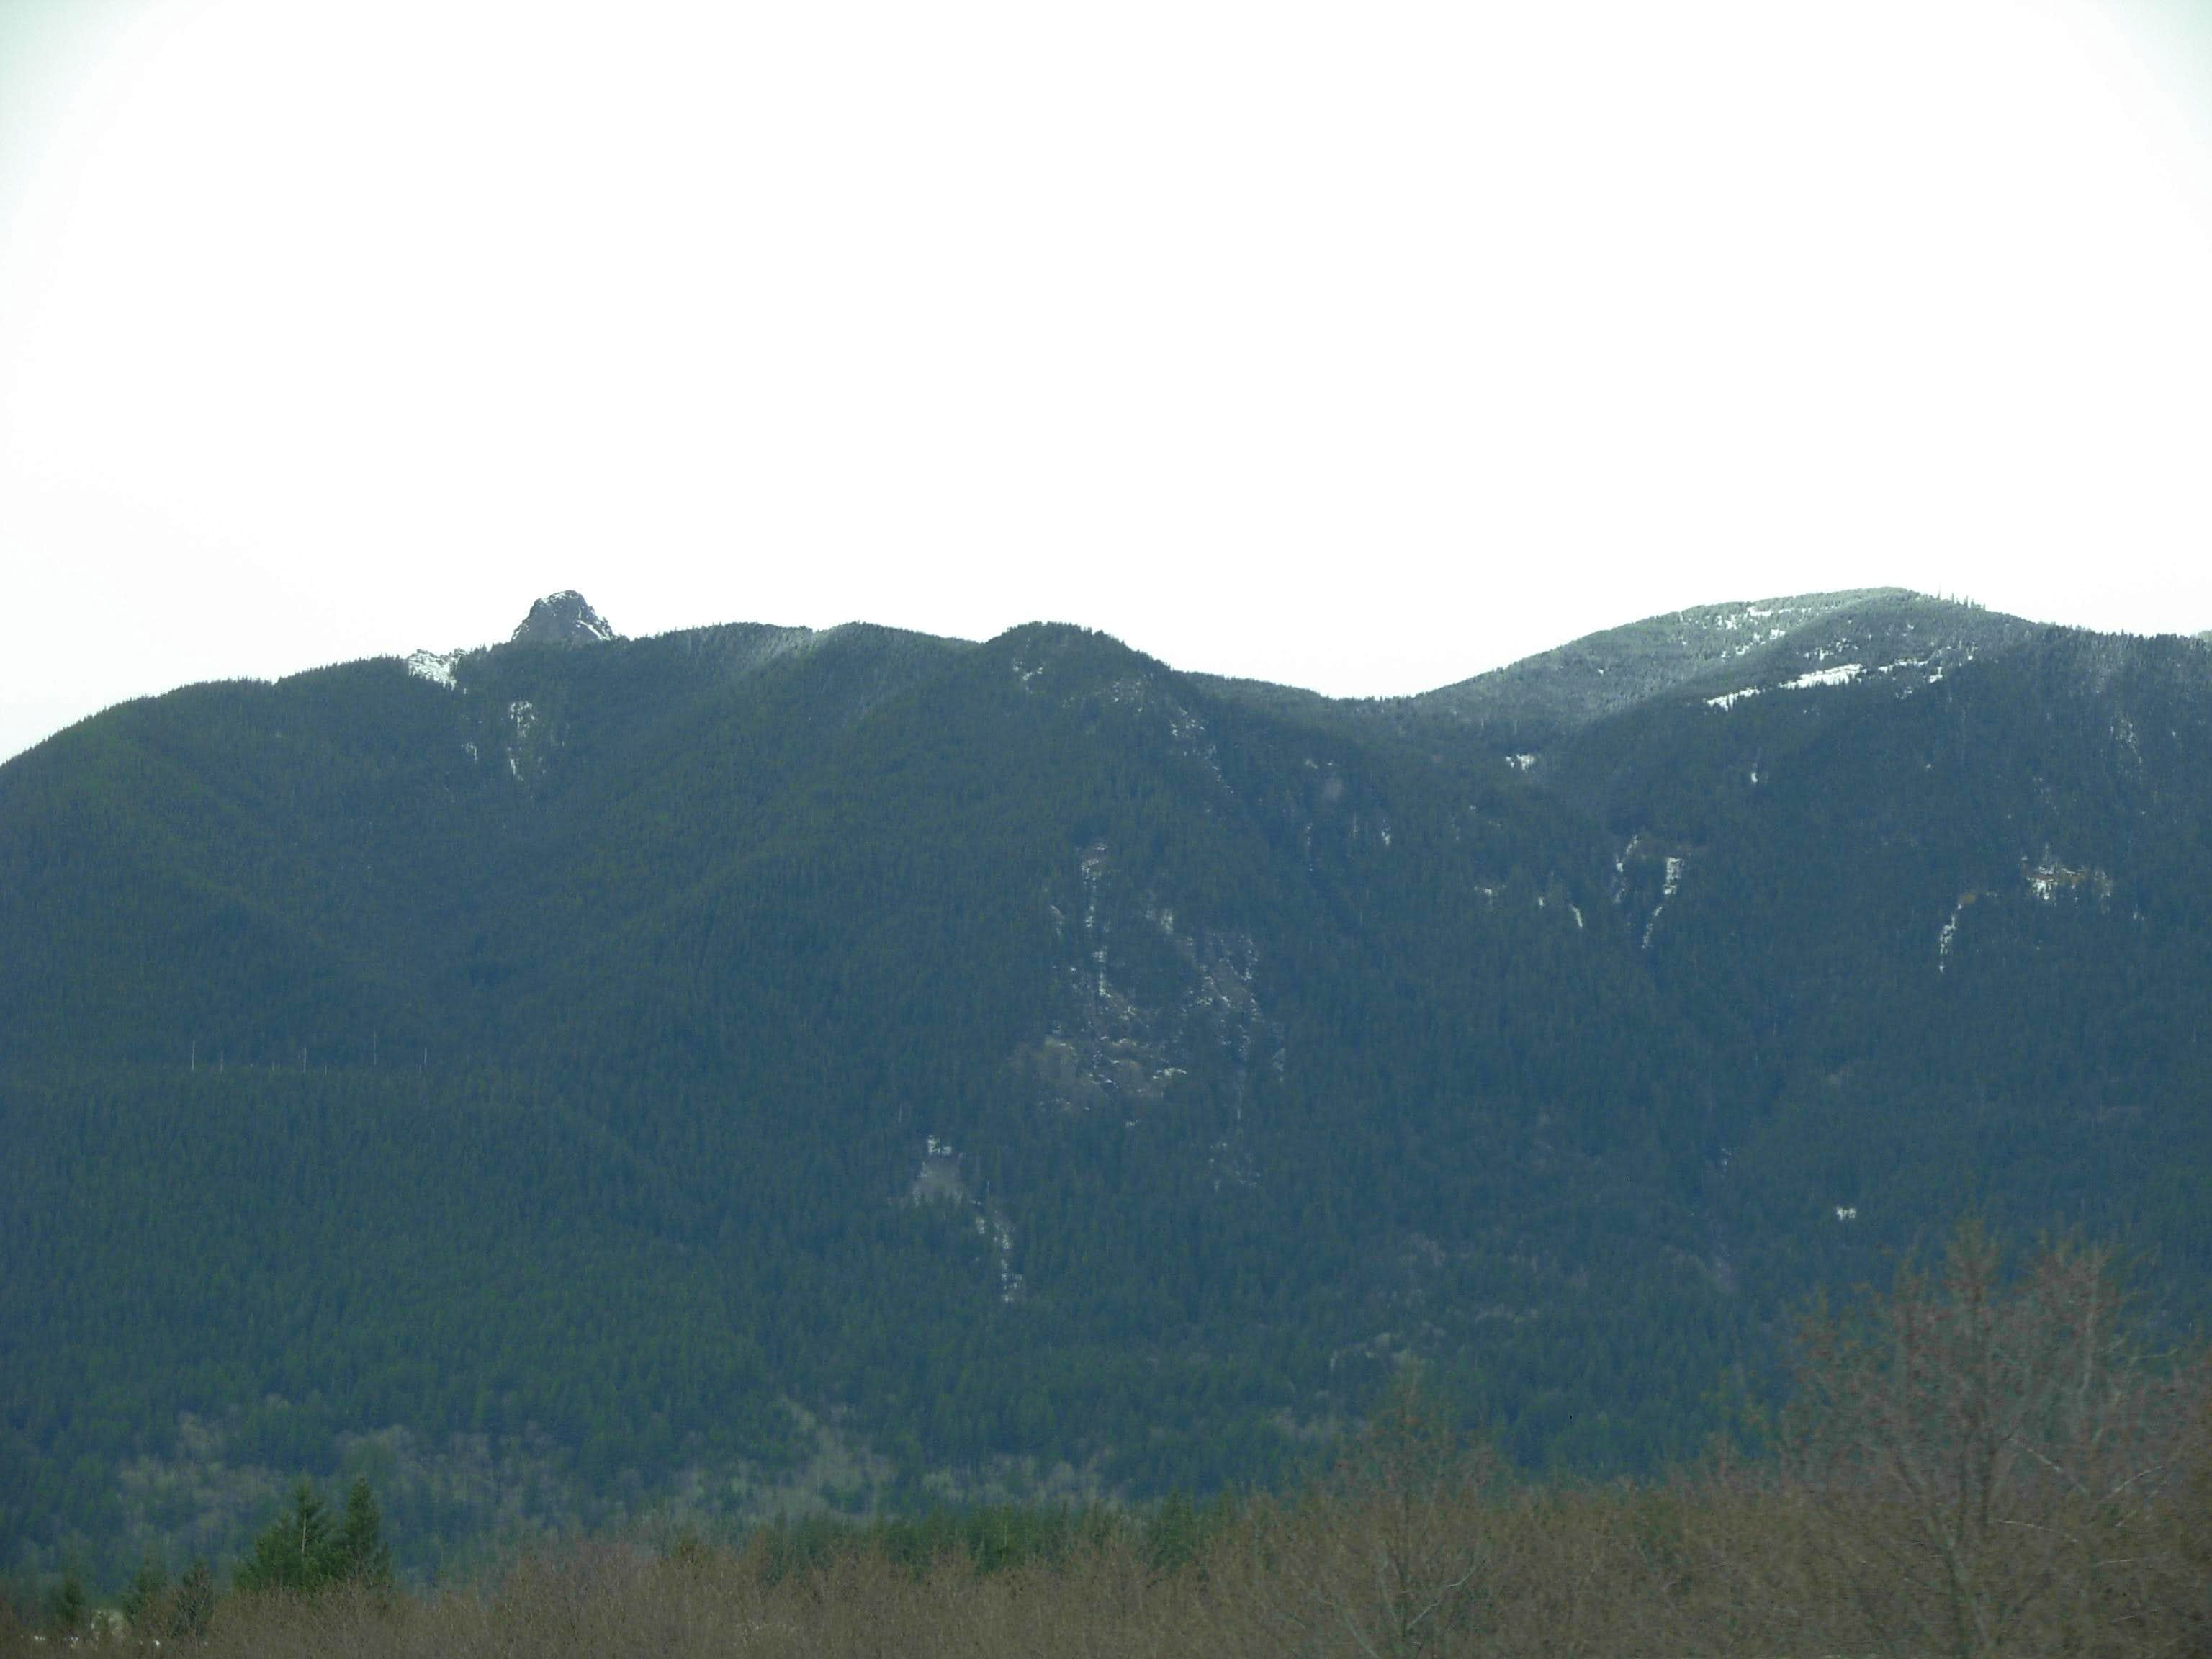 Mount Si Natural Resources Conservation Area (NRCA)